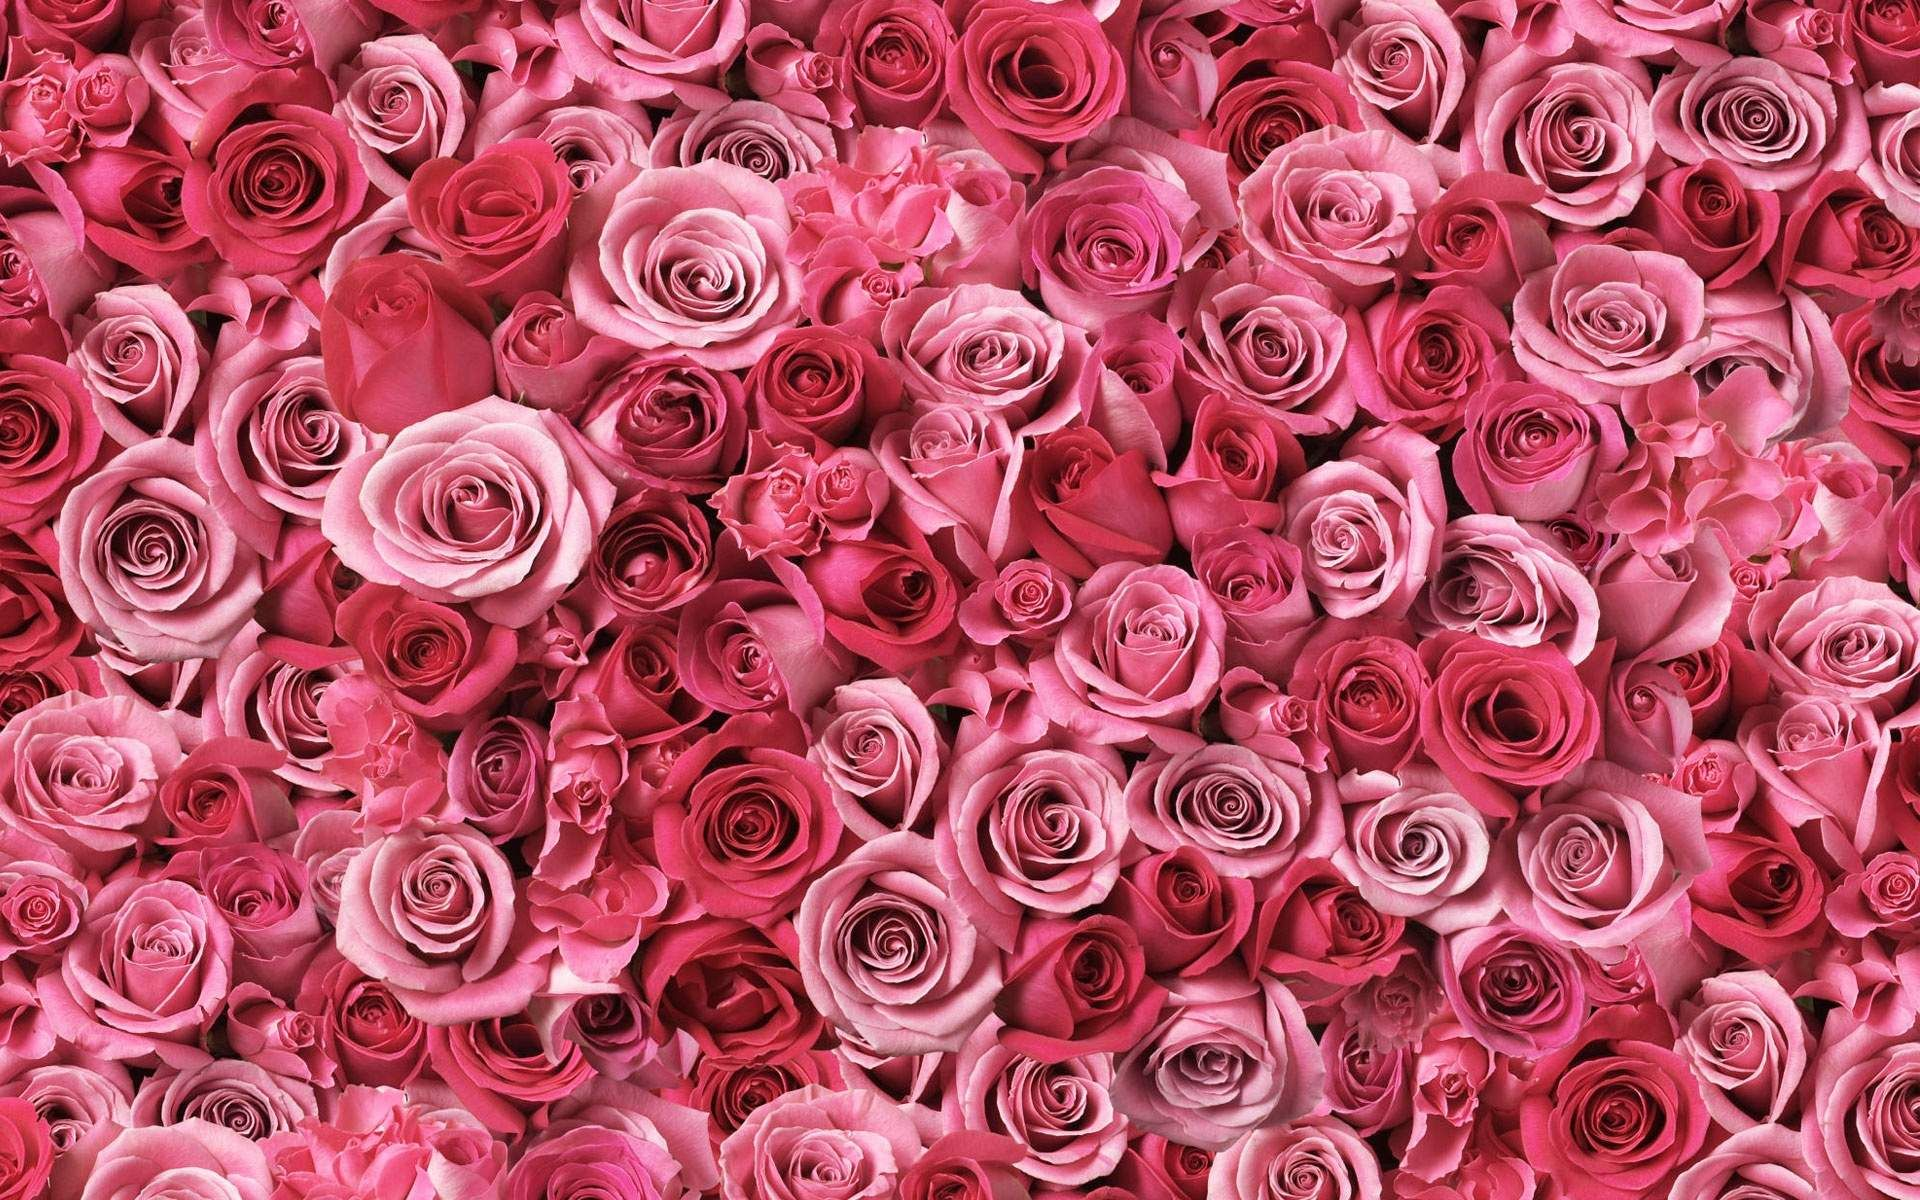 Pink Pictures Beautiful Wallpapers38 Blooming Rose Flowers Animated